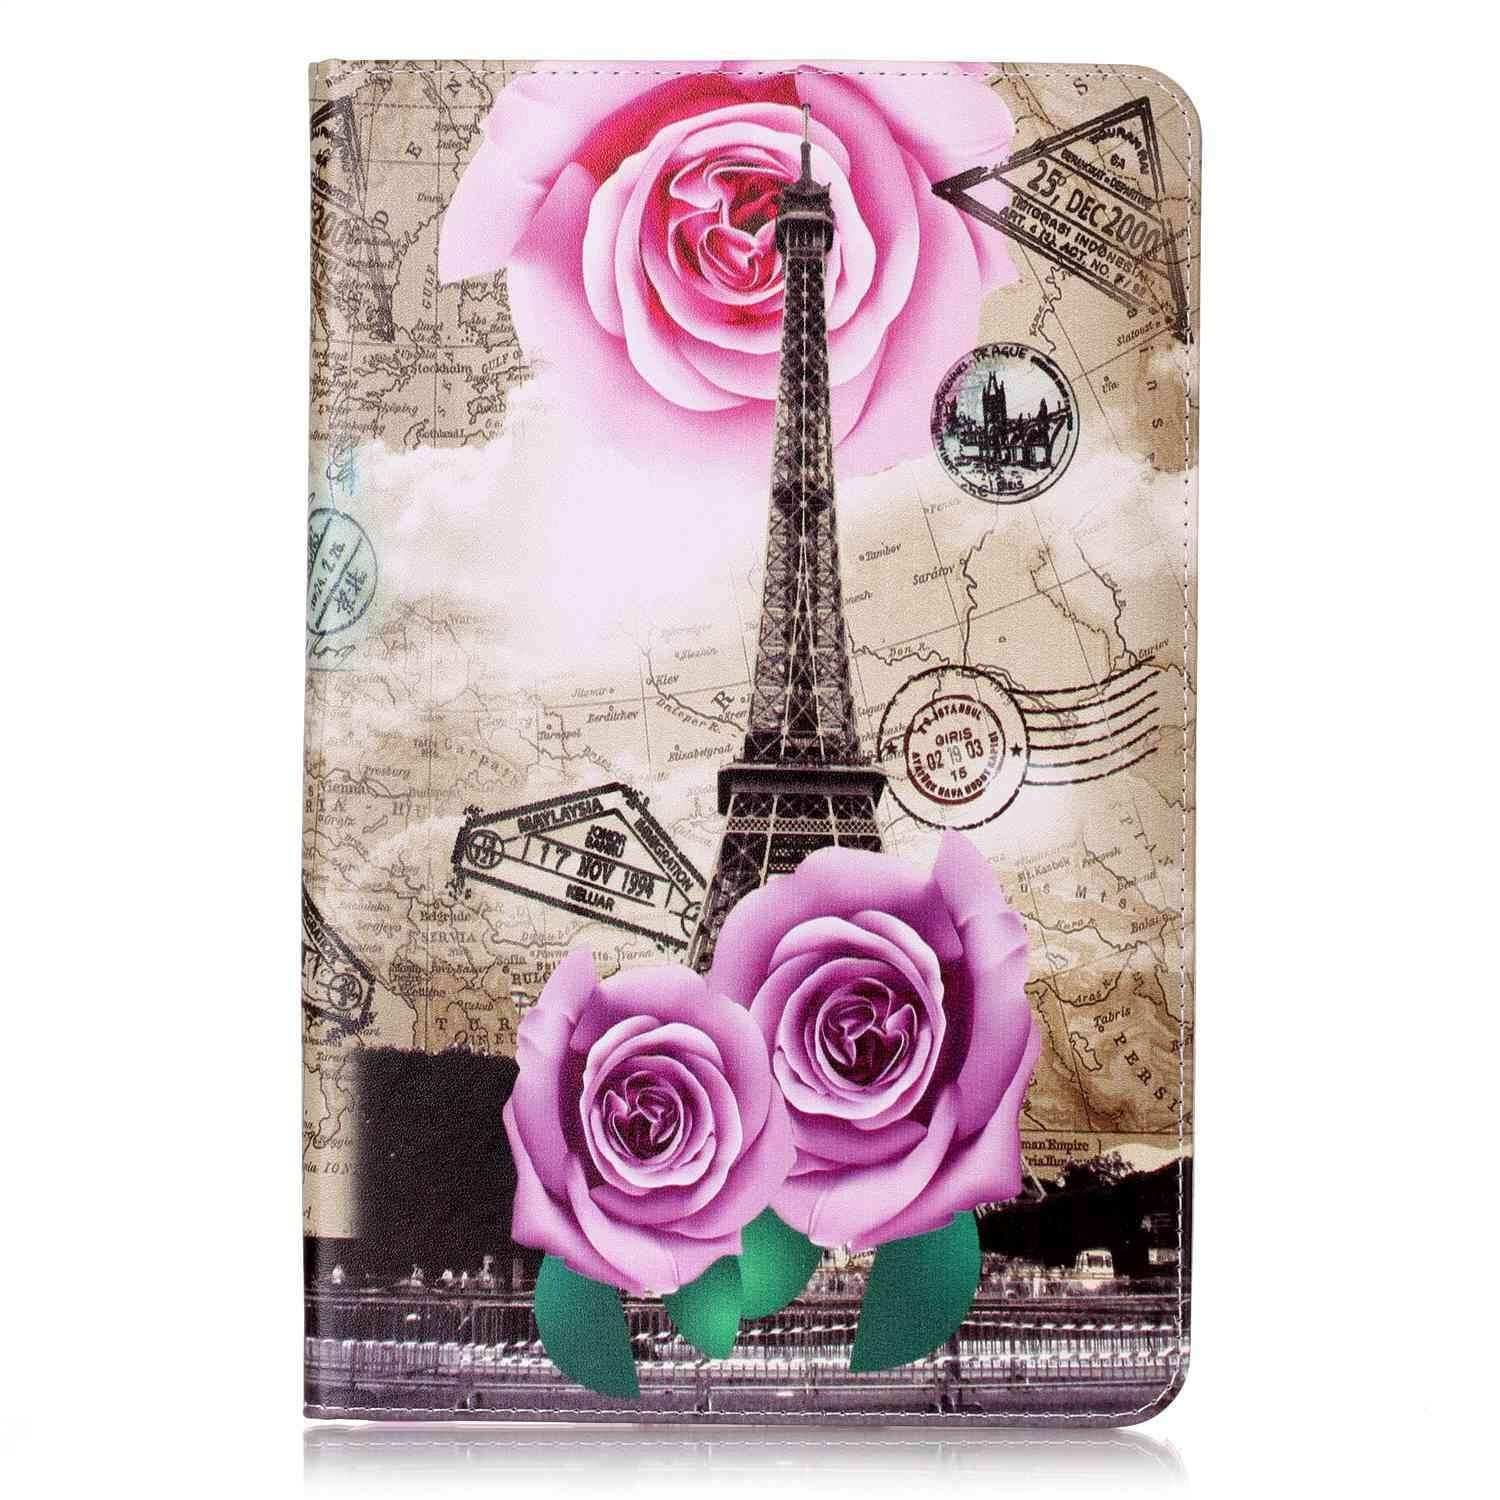 galaxy tab a 10 1 s pen 2016 case with a wide selection of images and 2 stand 6: